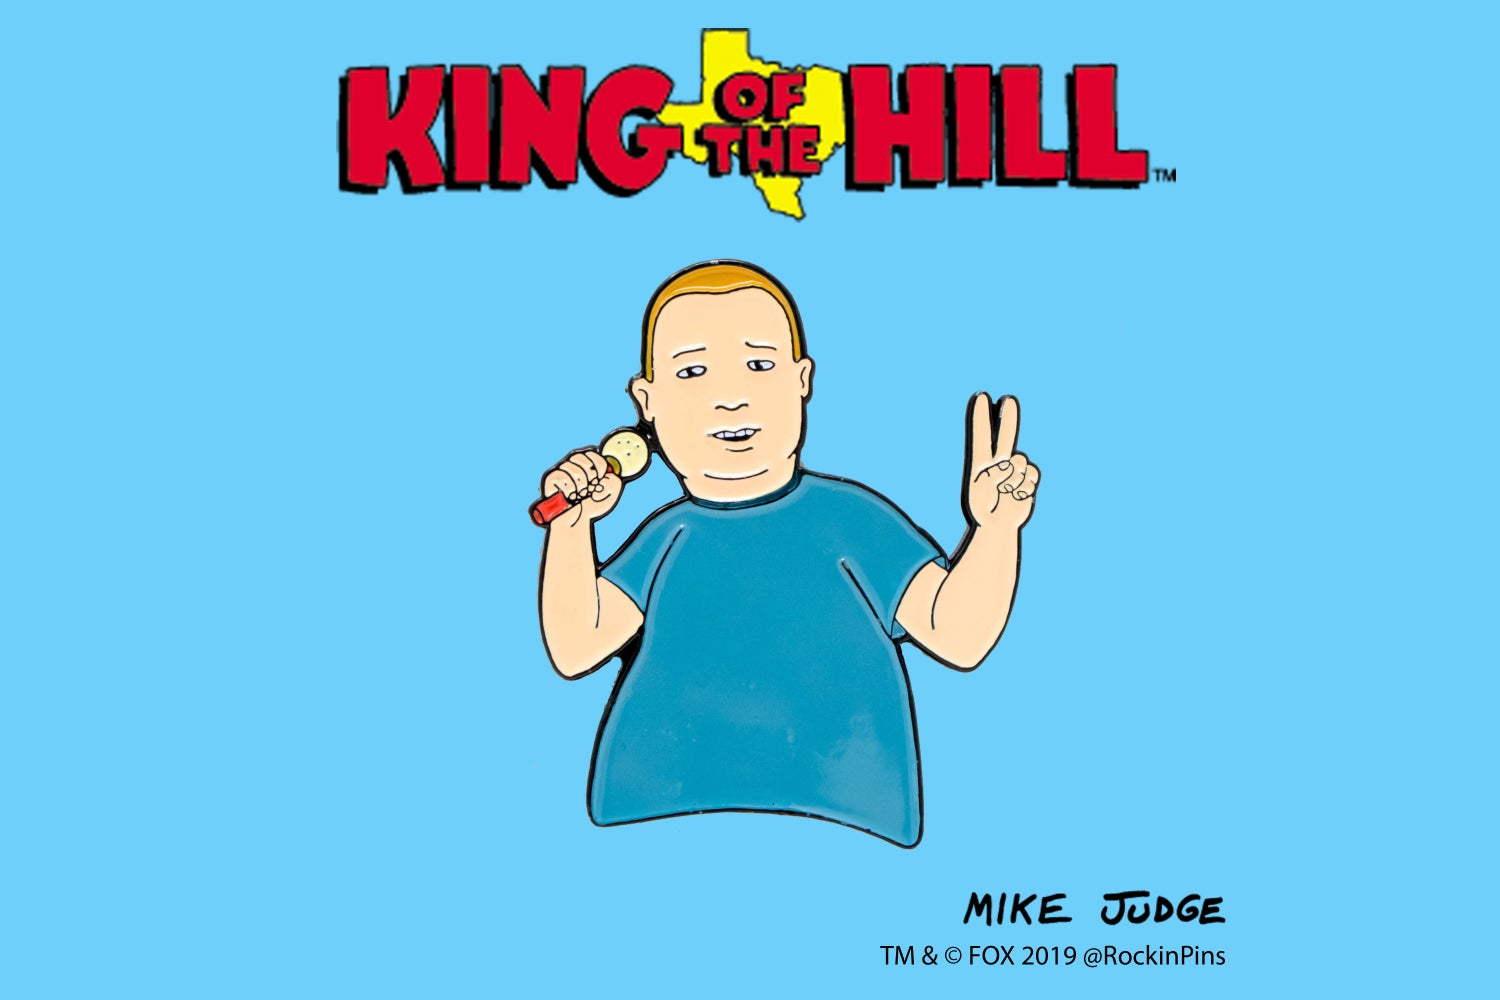 Image of King of the Hill - Bobby Hill with Mic